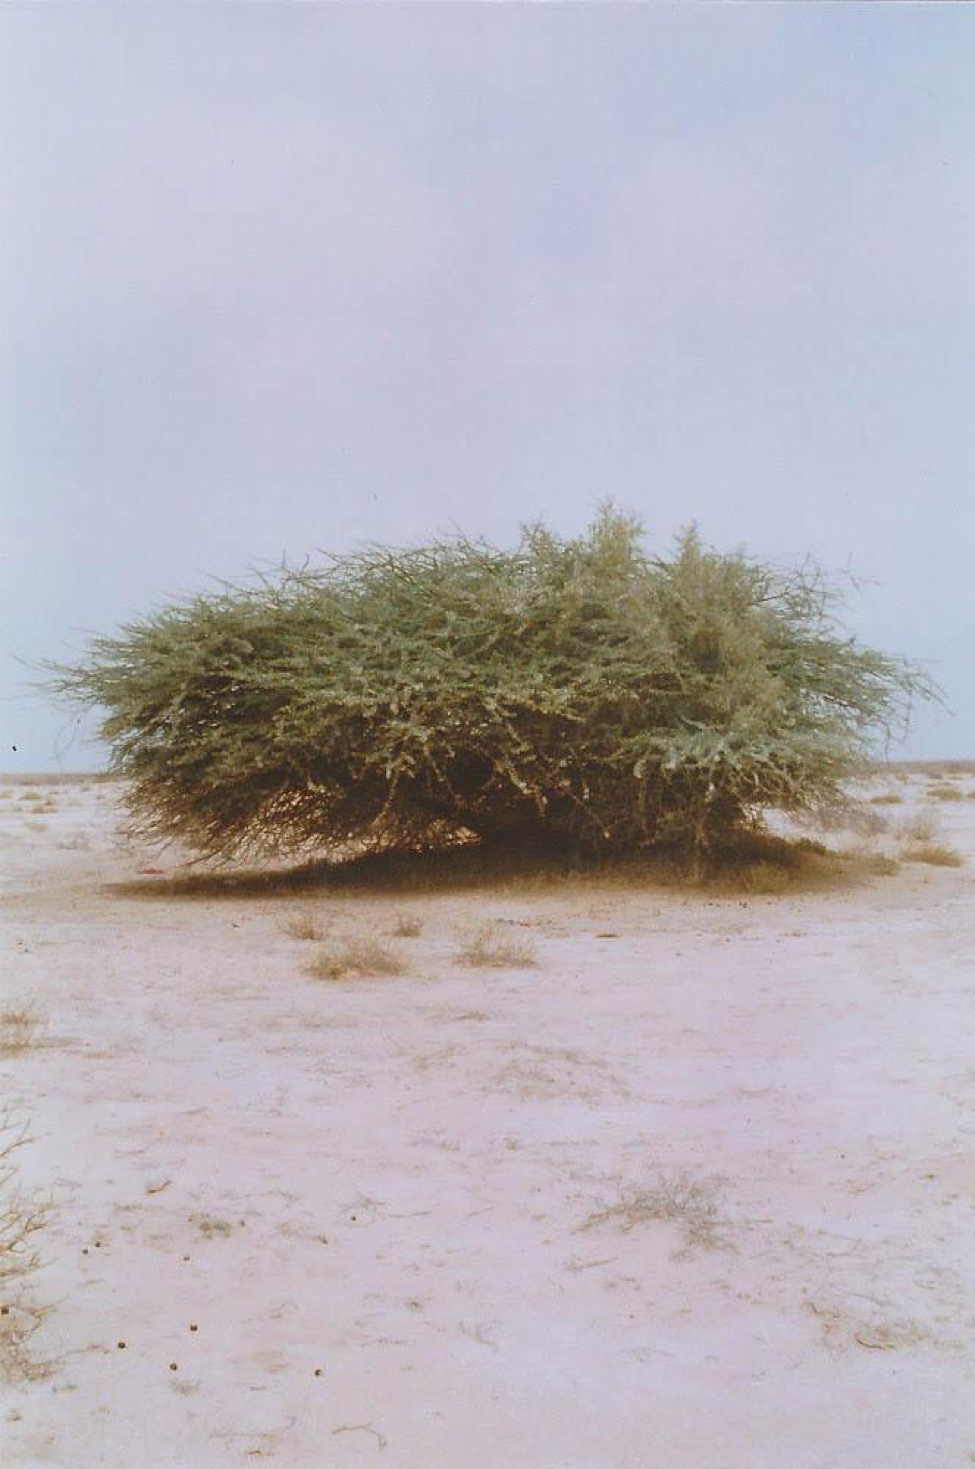 [Image description: photograph of a single wide, leafy shrub in the middle of a sandy landscape.]  Nanette Thiam